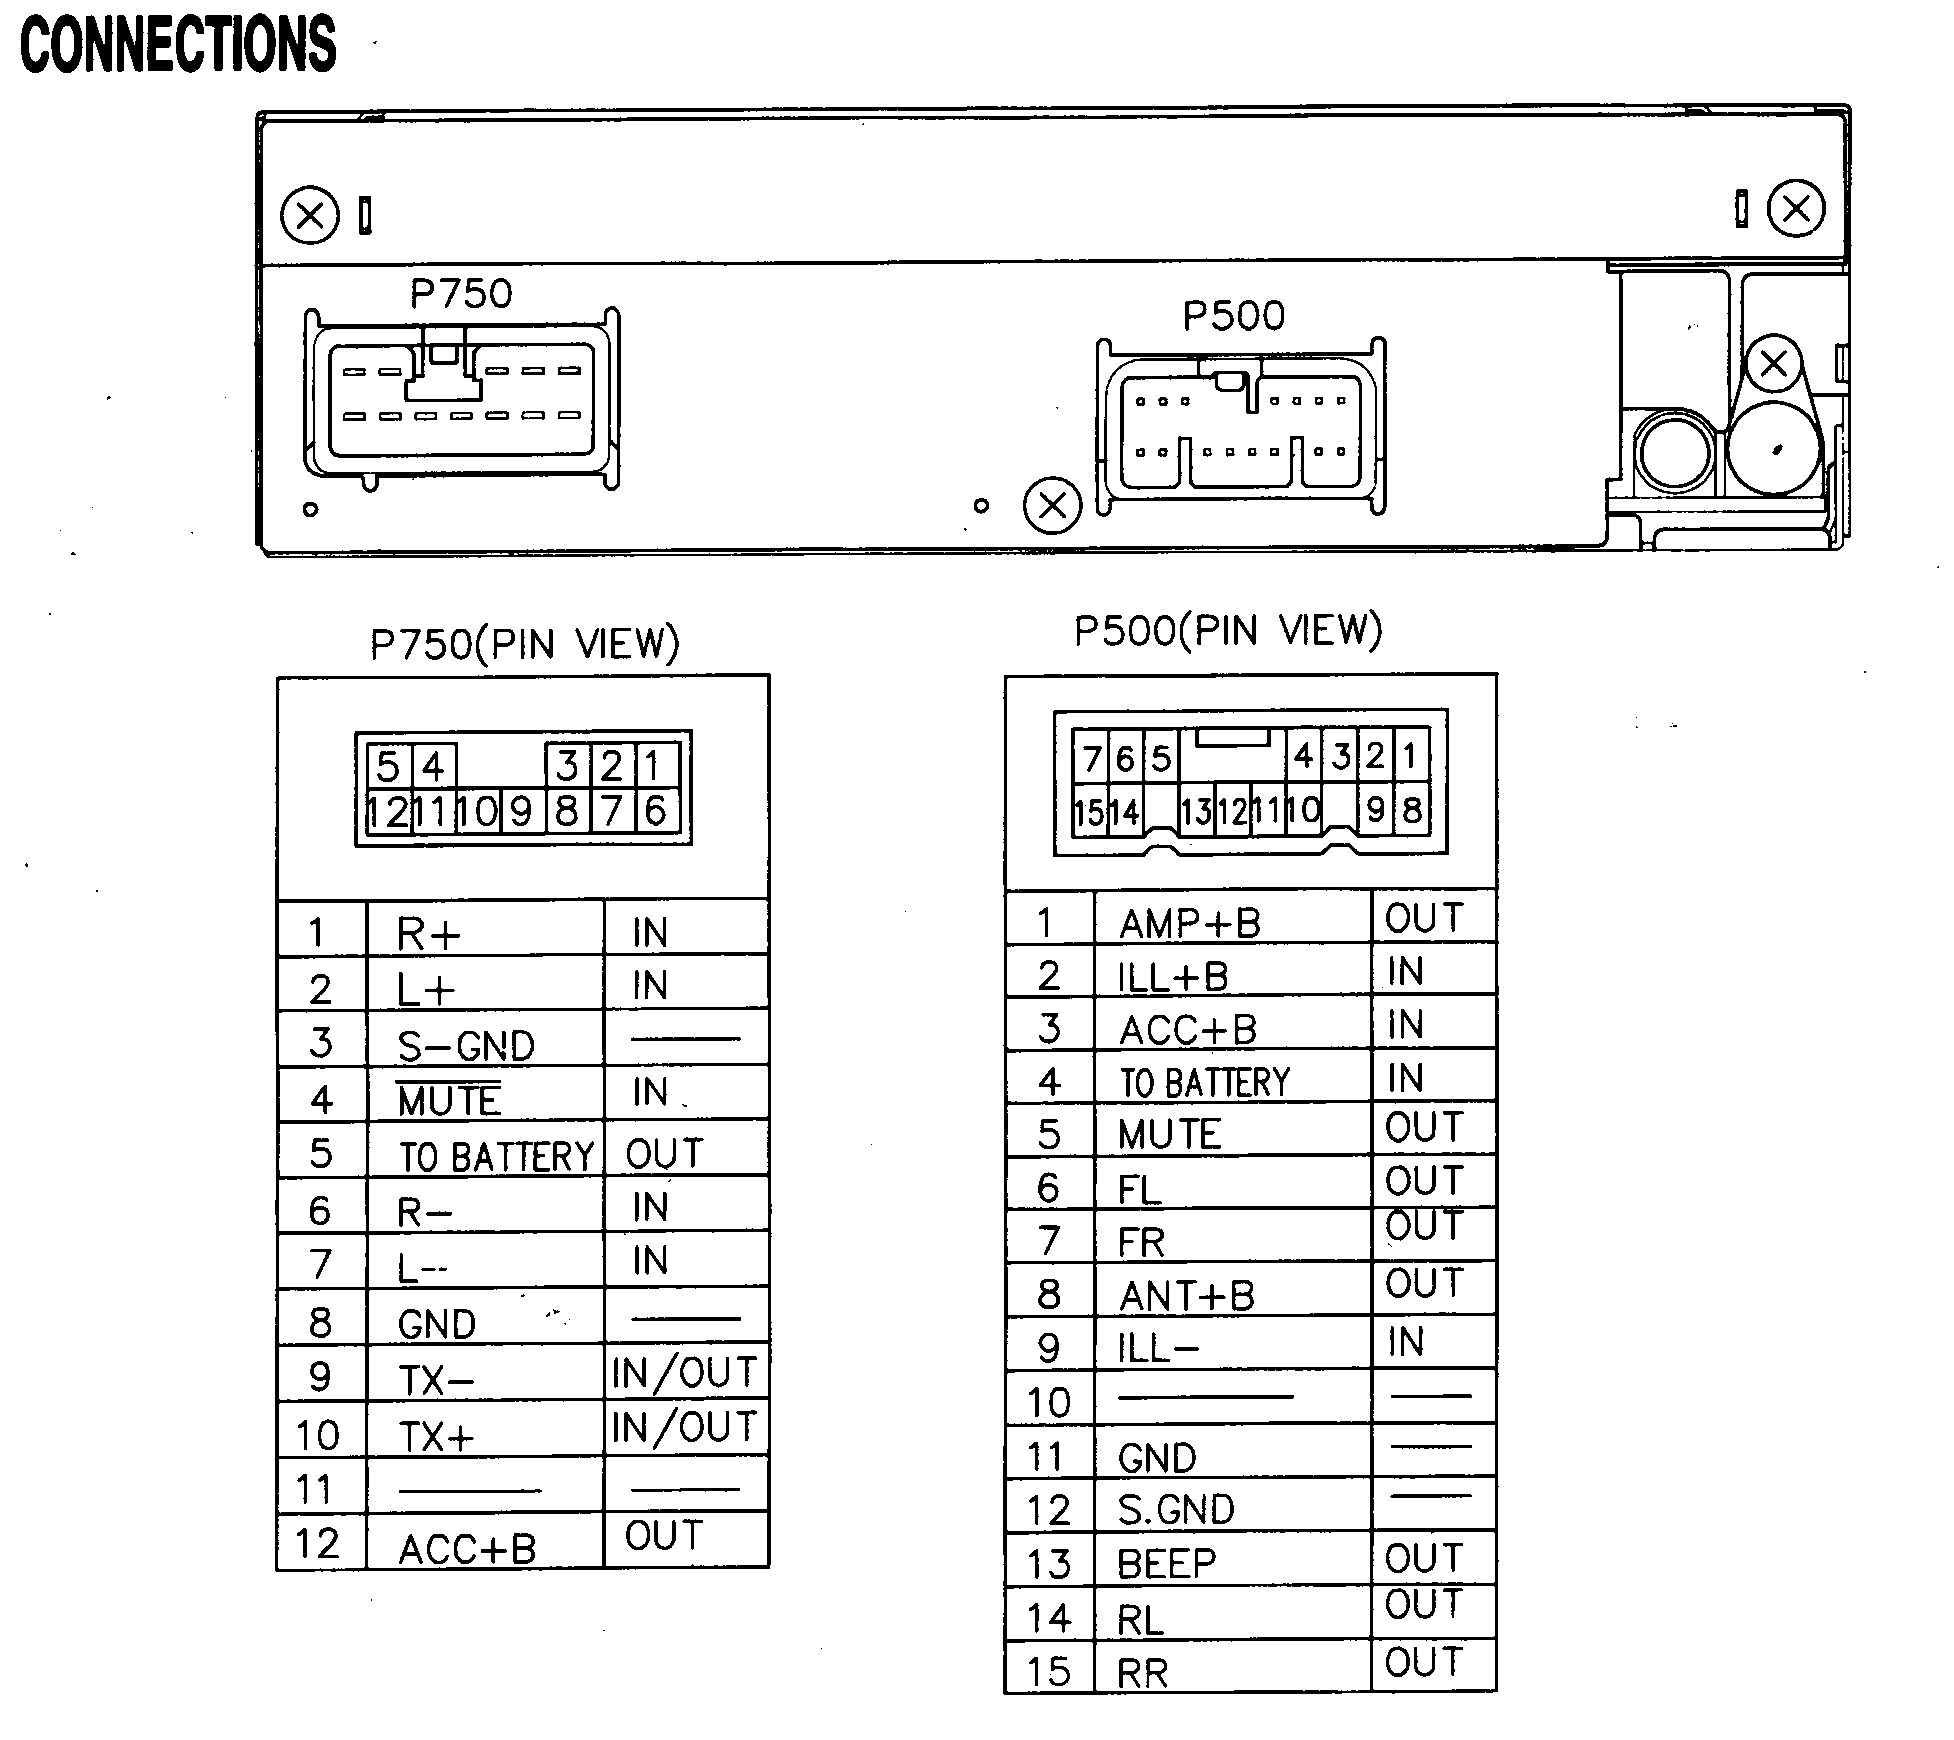 Car Stereo Amp Wiring Diagram Connector 2000 Connectors Wiring Diagram Get Free Image About Wiring Of Car Stereo Amp Wiring Diagram